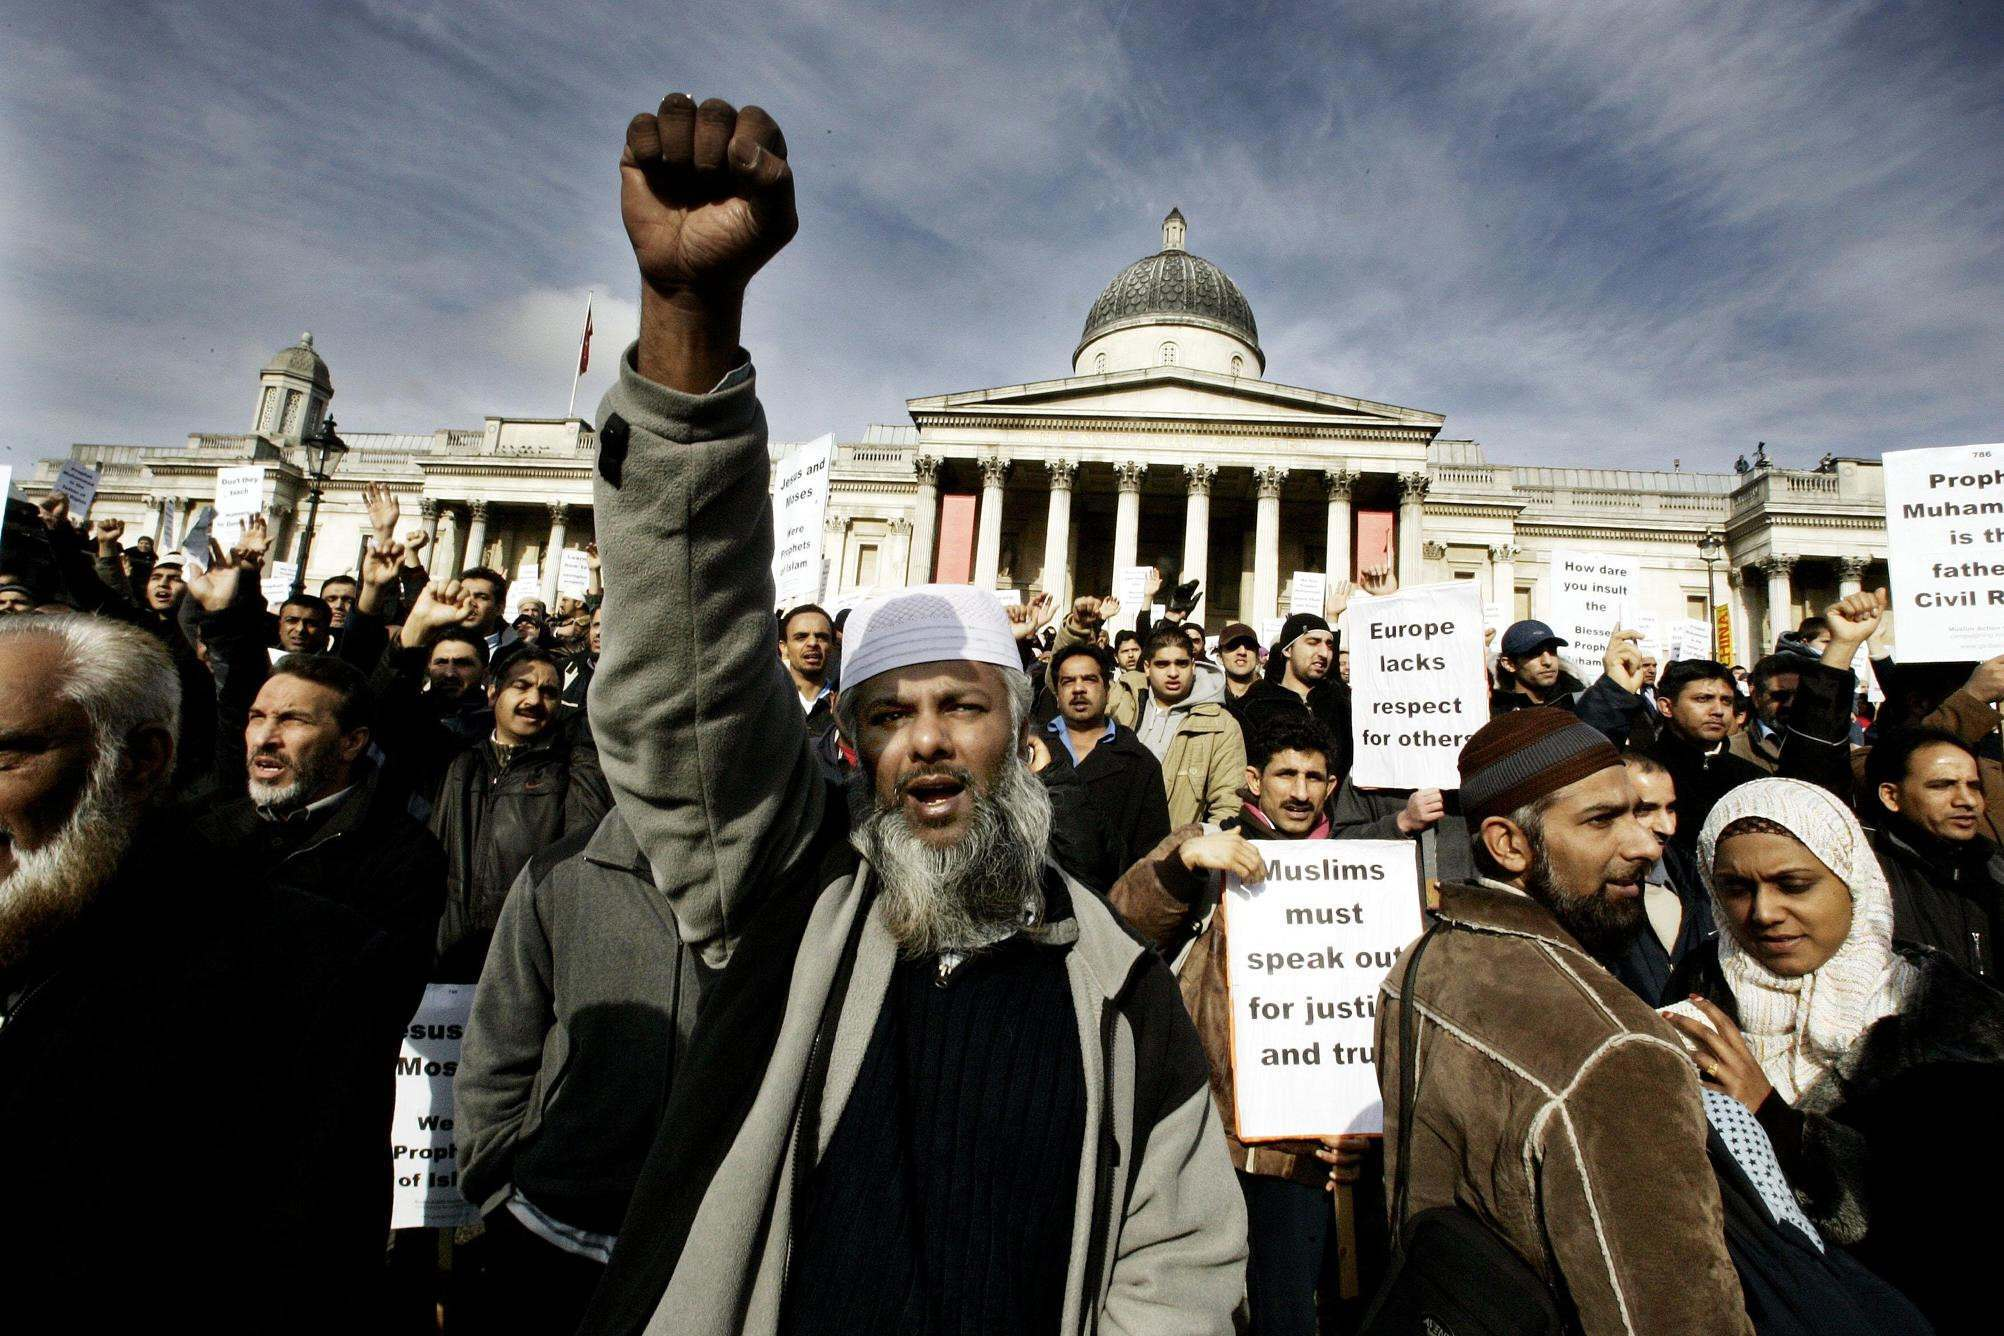 The Islamaphobia rally organised by a coalition of moderate Muslim groups including the Muslim Association of Britain, the UK Islamic Mission and the Islamic Society of Britain in Trafalgar Square, London, Saturday February 11, 2006.